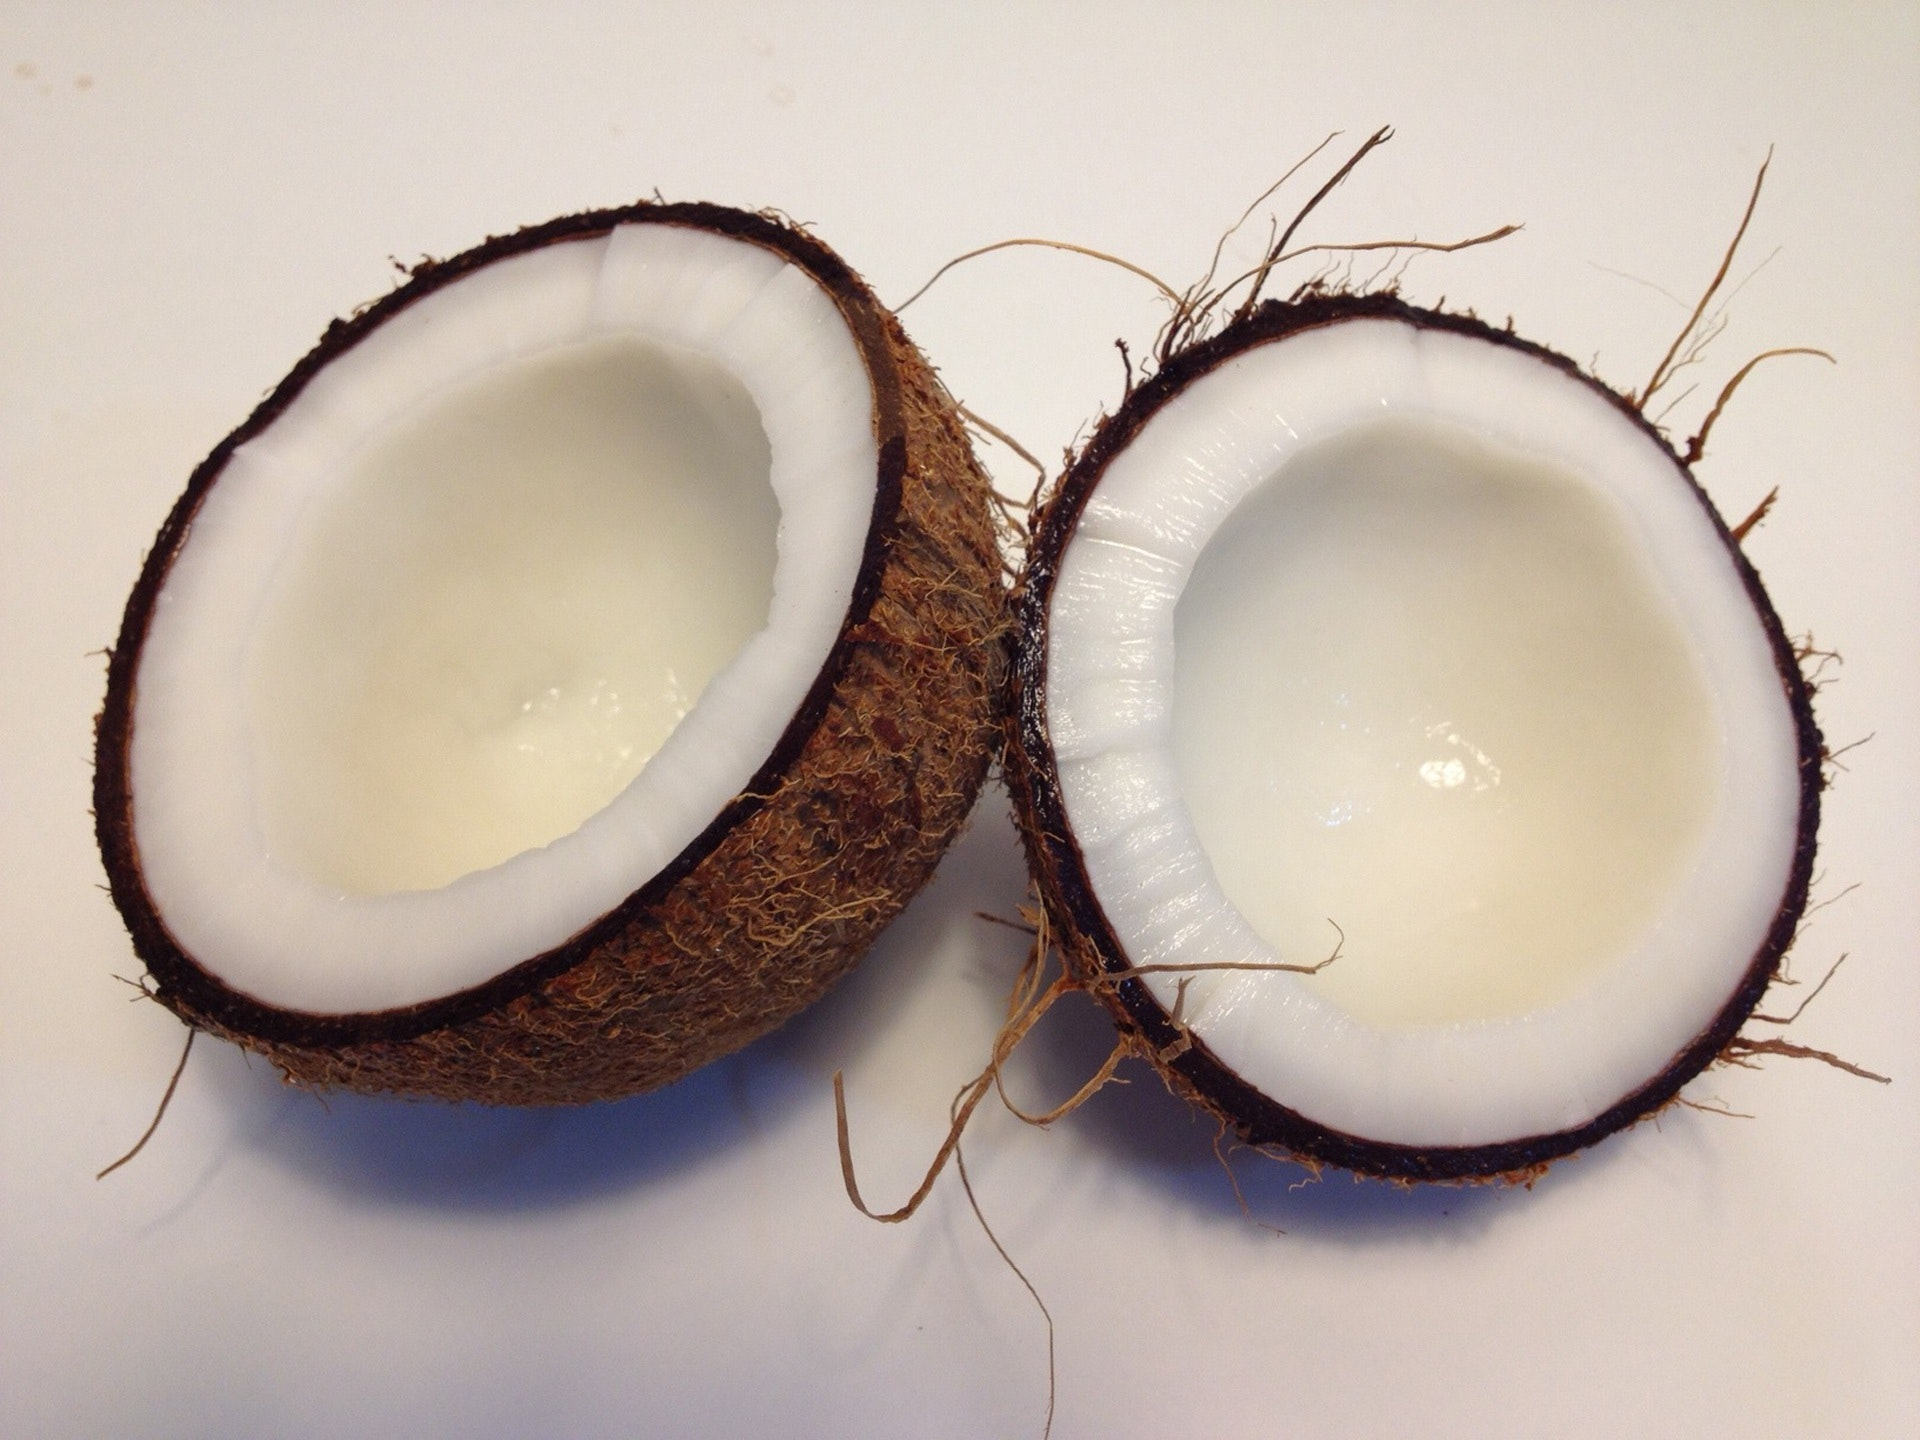 close-up-coconut-food-221074